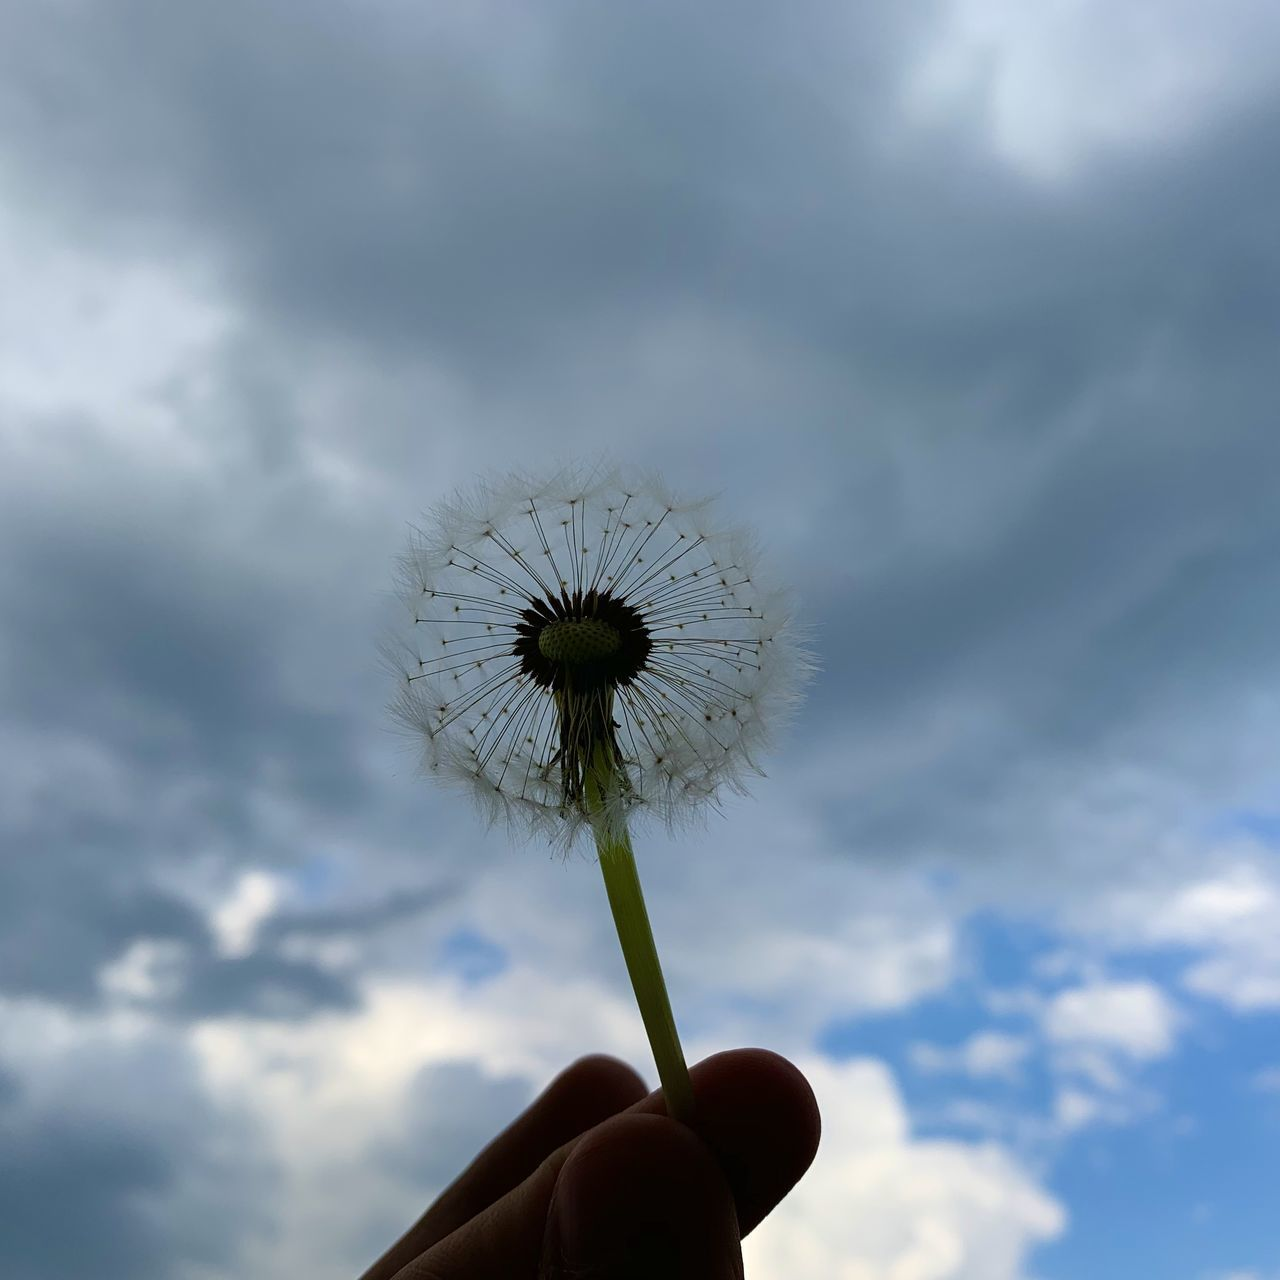 SILHOUETTE OF PERSON HOLDING DANDELION AGAINST SKY